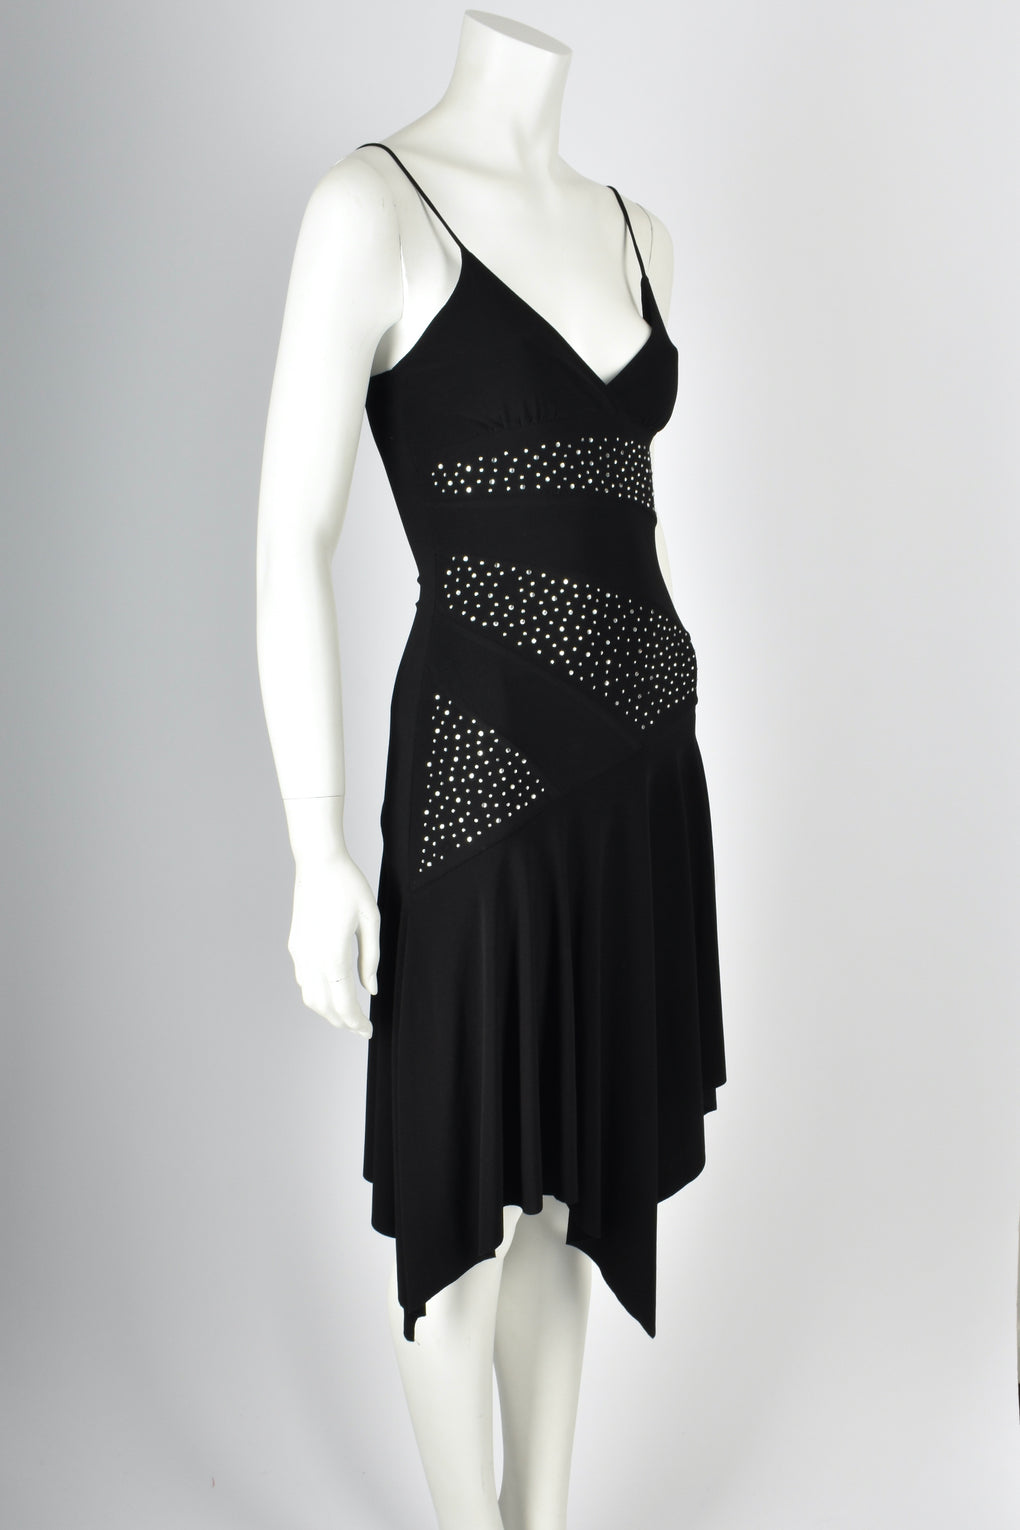 PRADA 1990s sparkly disco dress XS-S